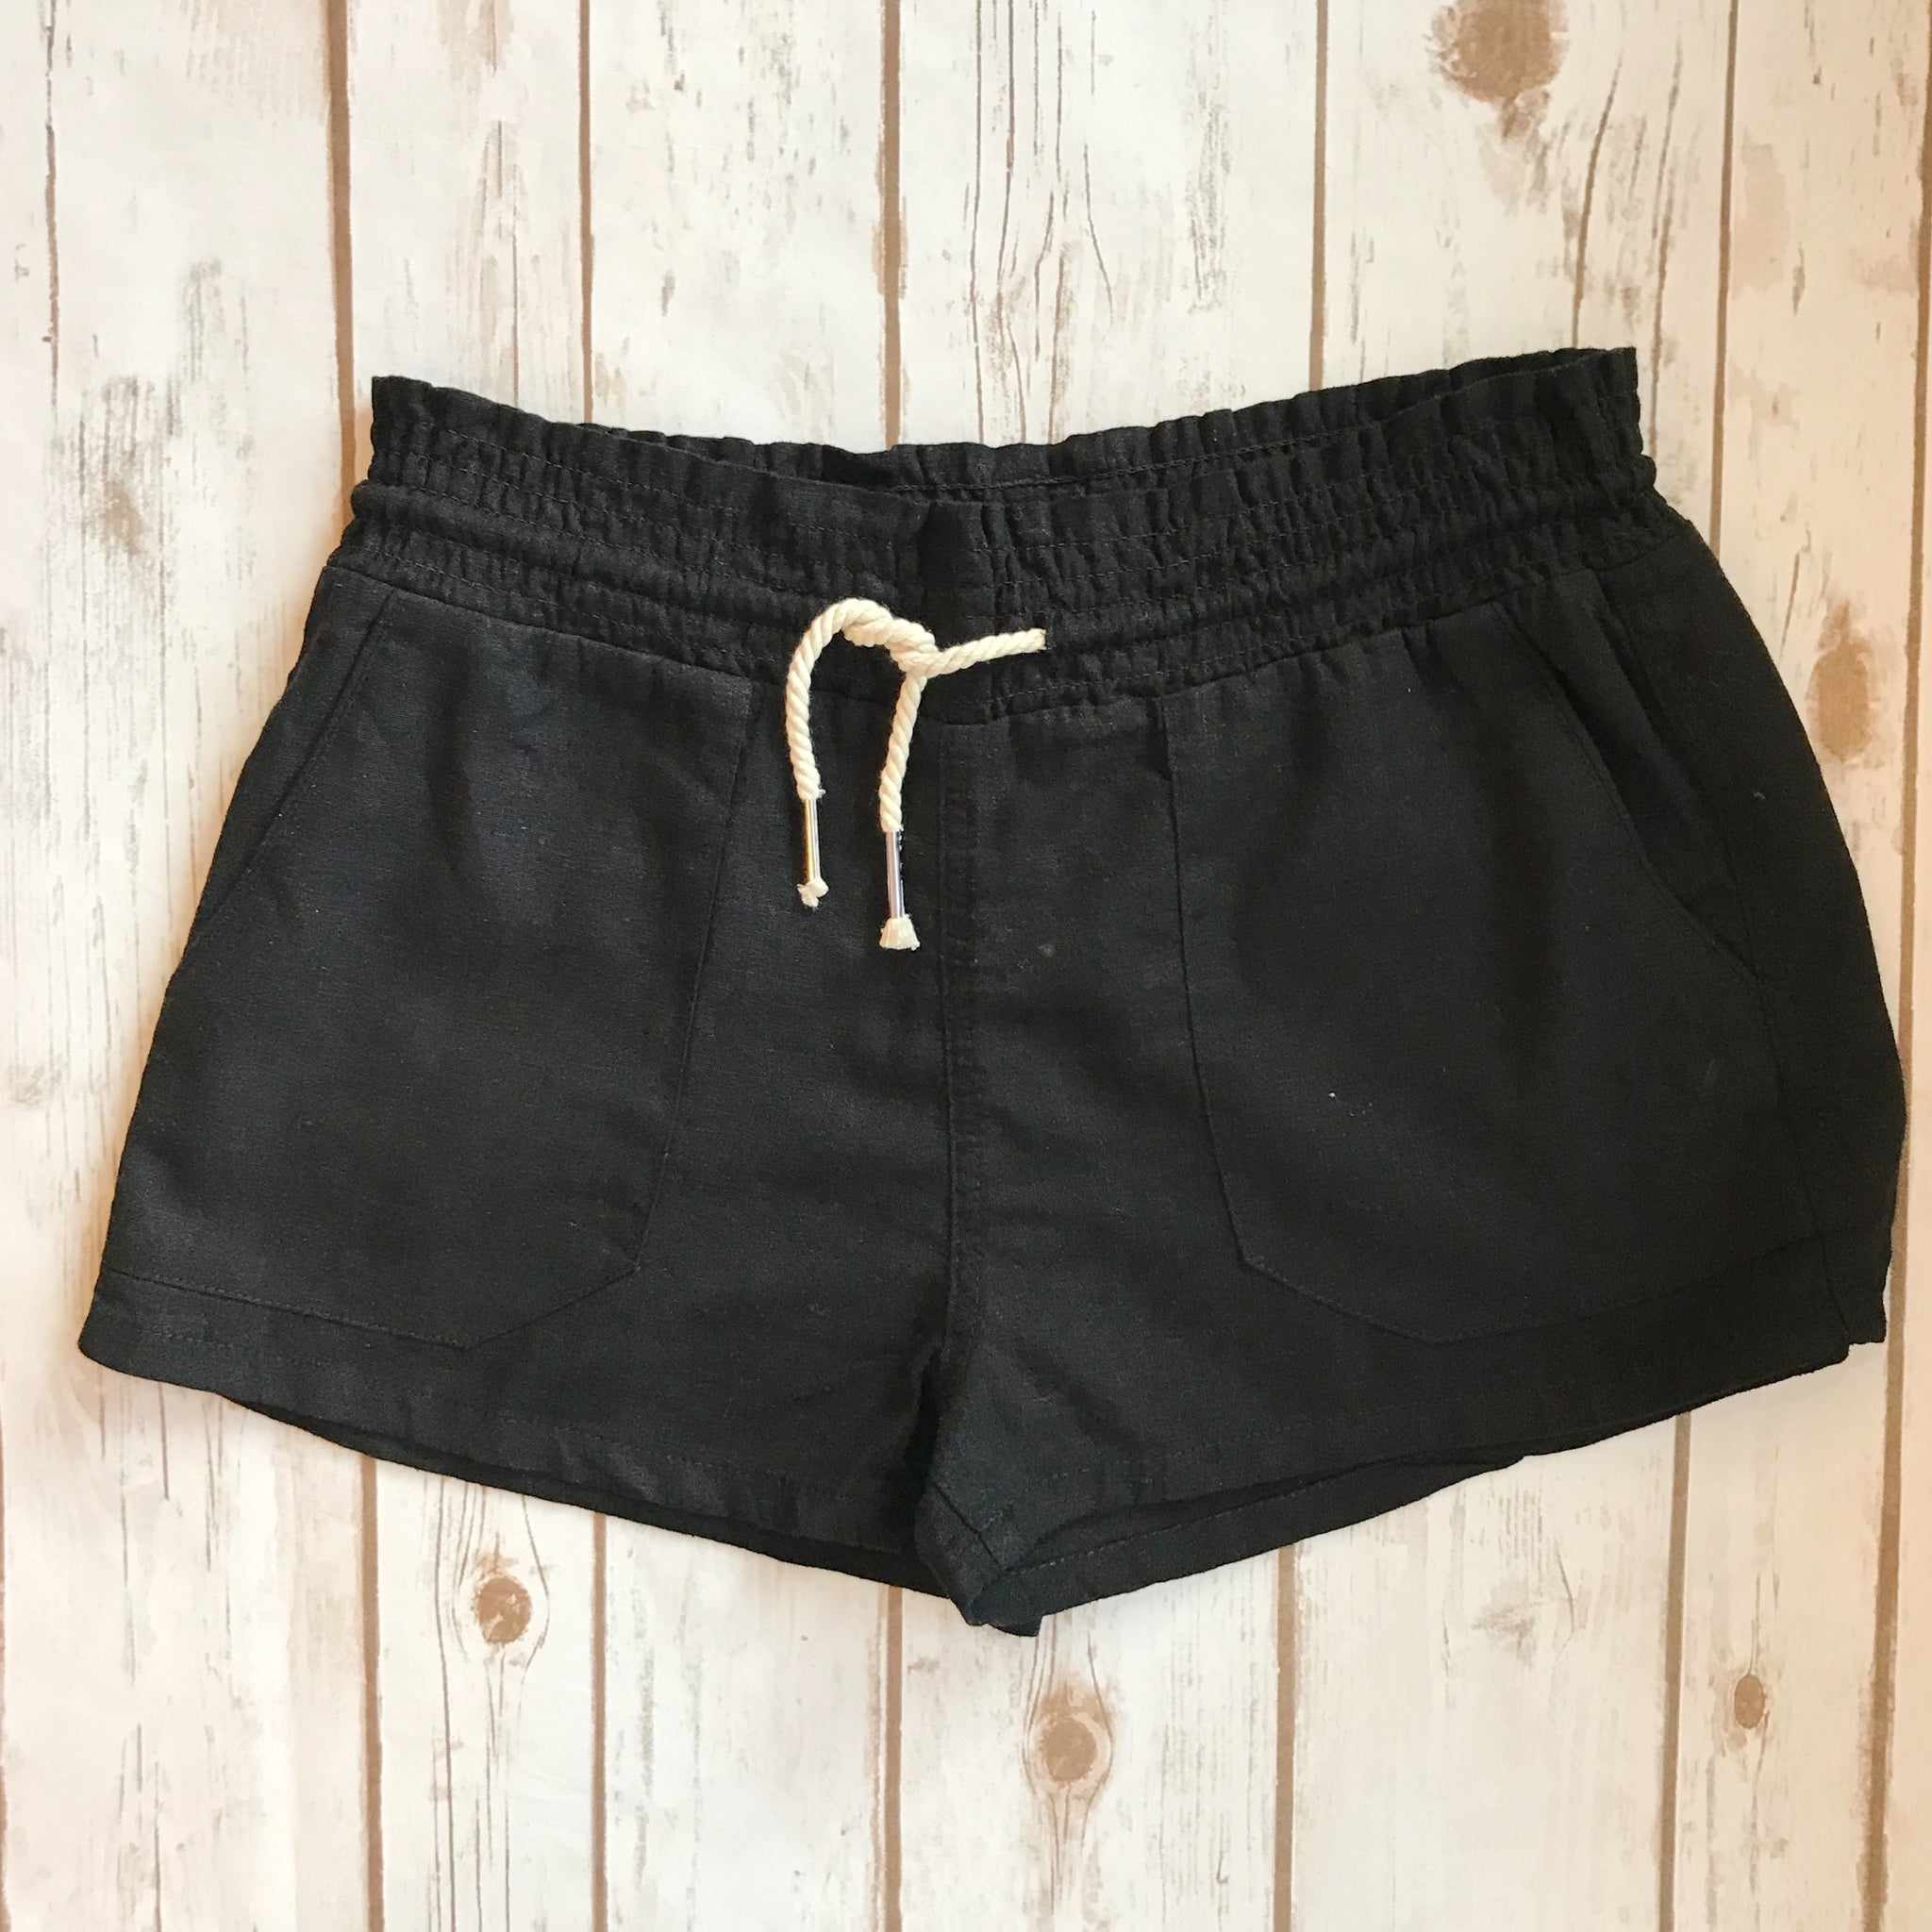 Rope Drawstring Shorts - Why Not Boutique Tampa